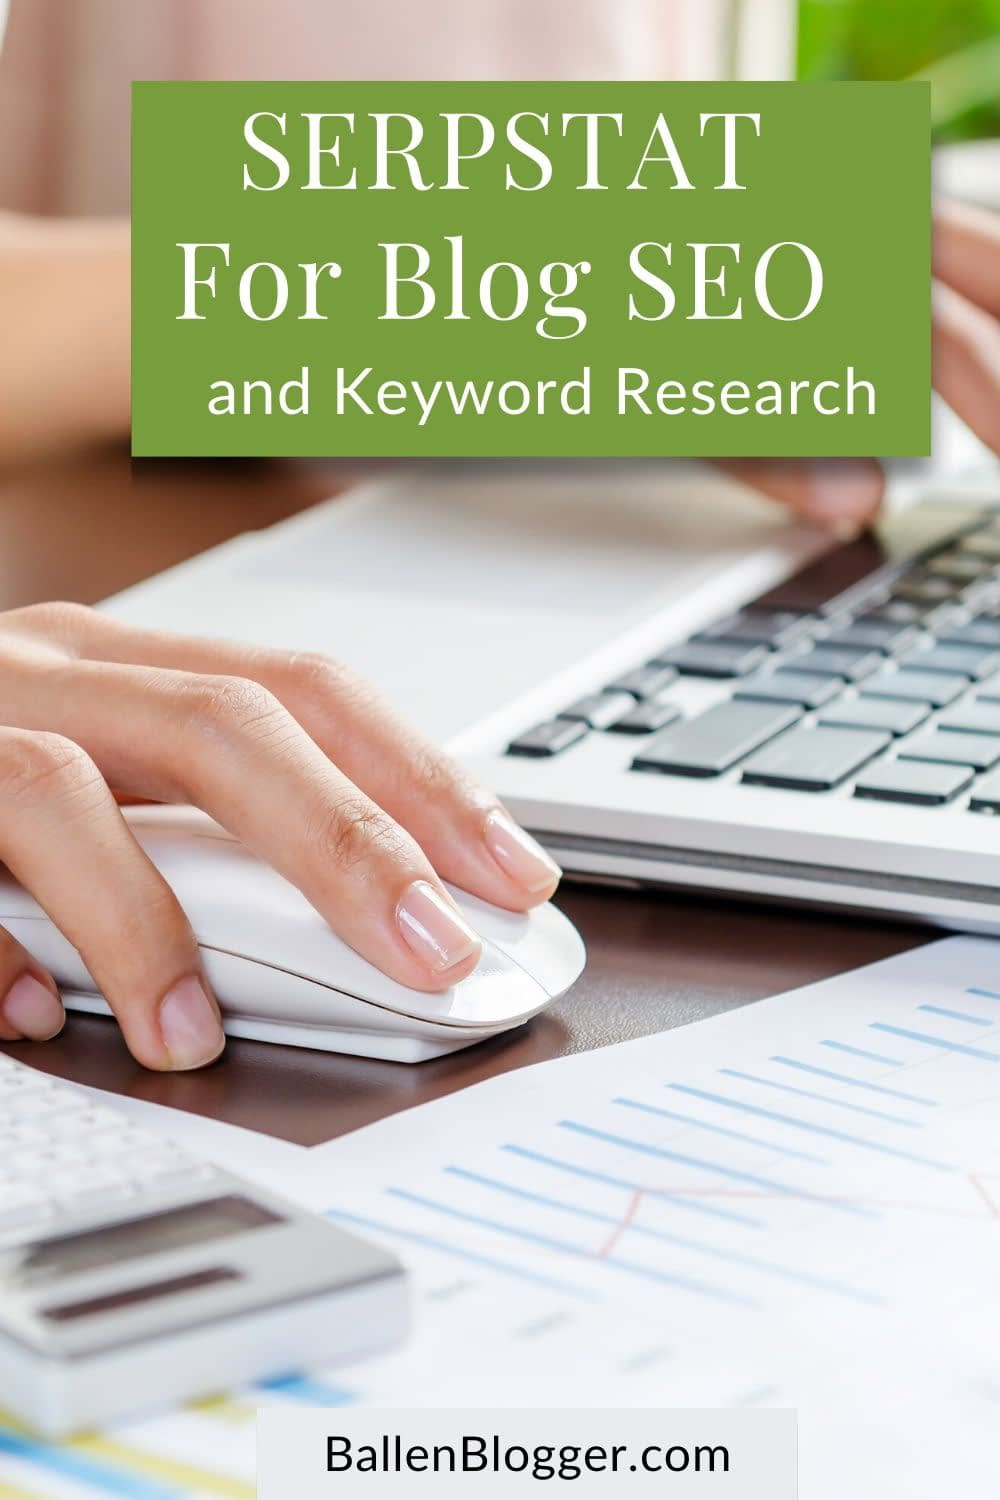 Serpstat is one of the most comprehensive keyword research and SEO platforms on the market.